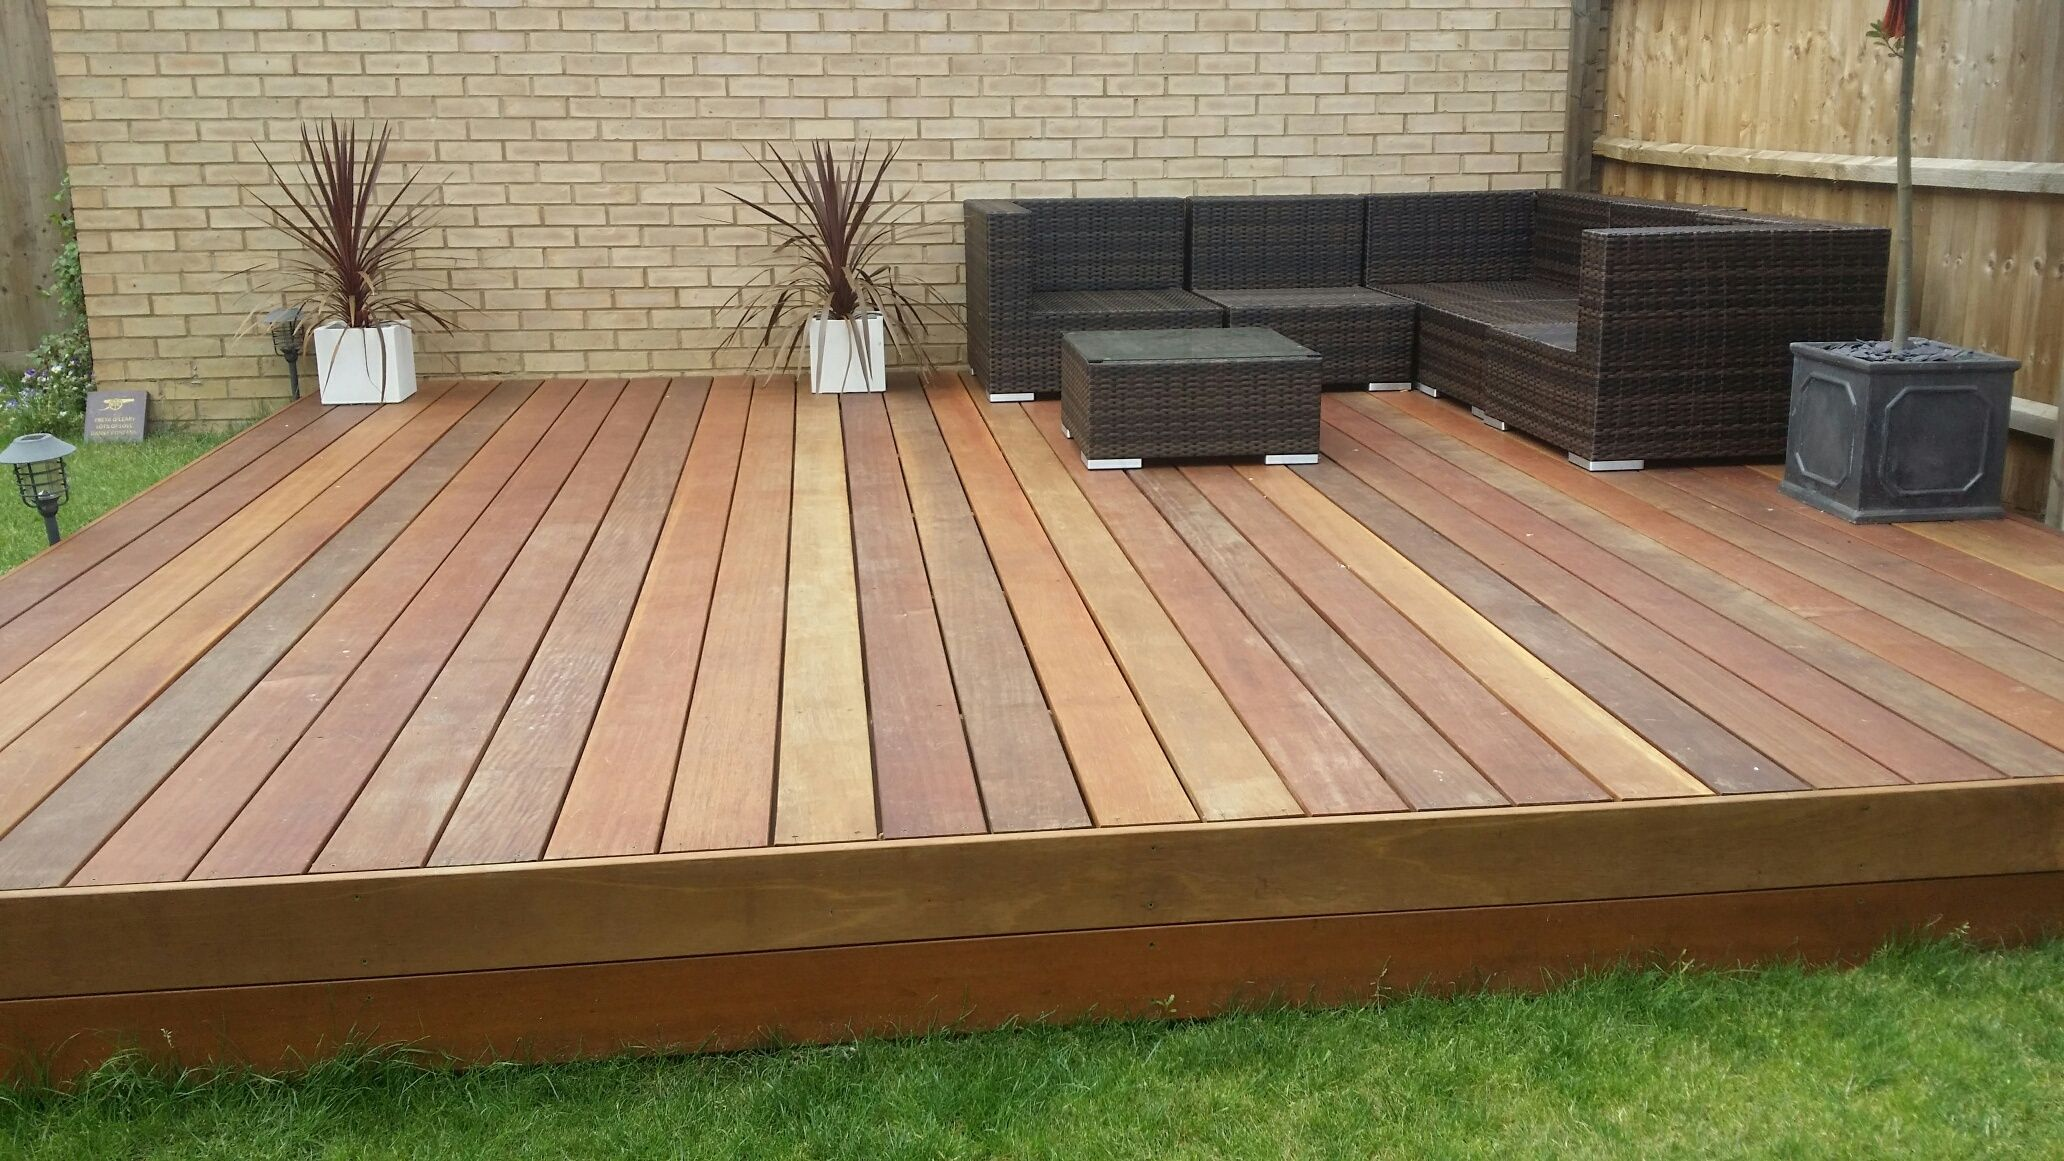 Raised decking ideas uk google search patio for Ideas for deck designs